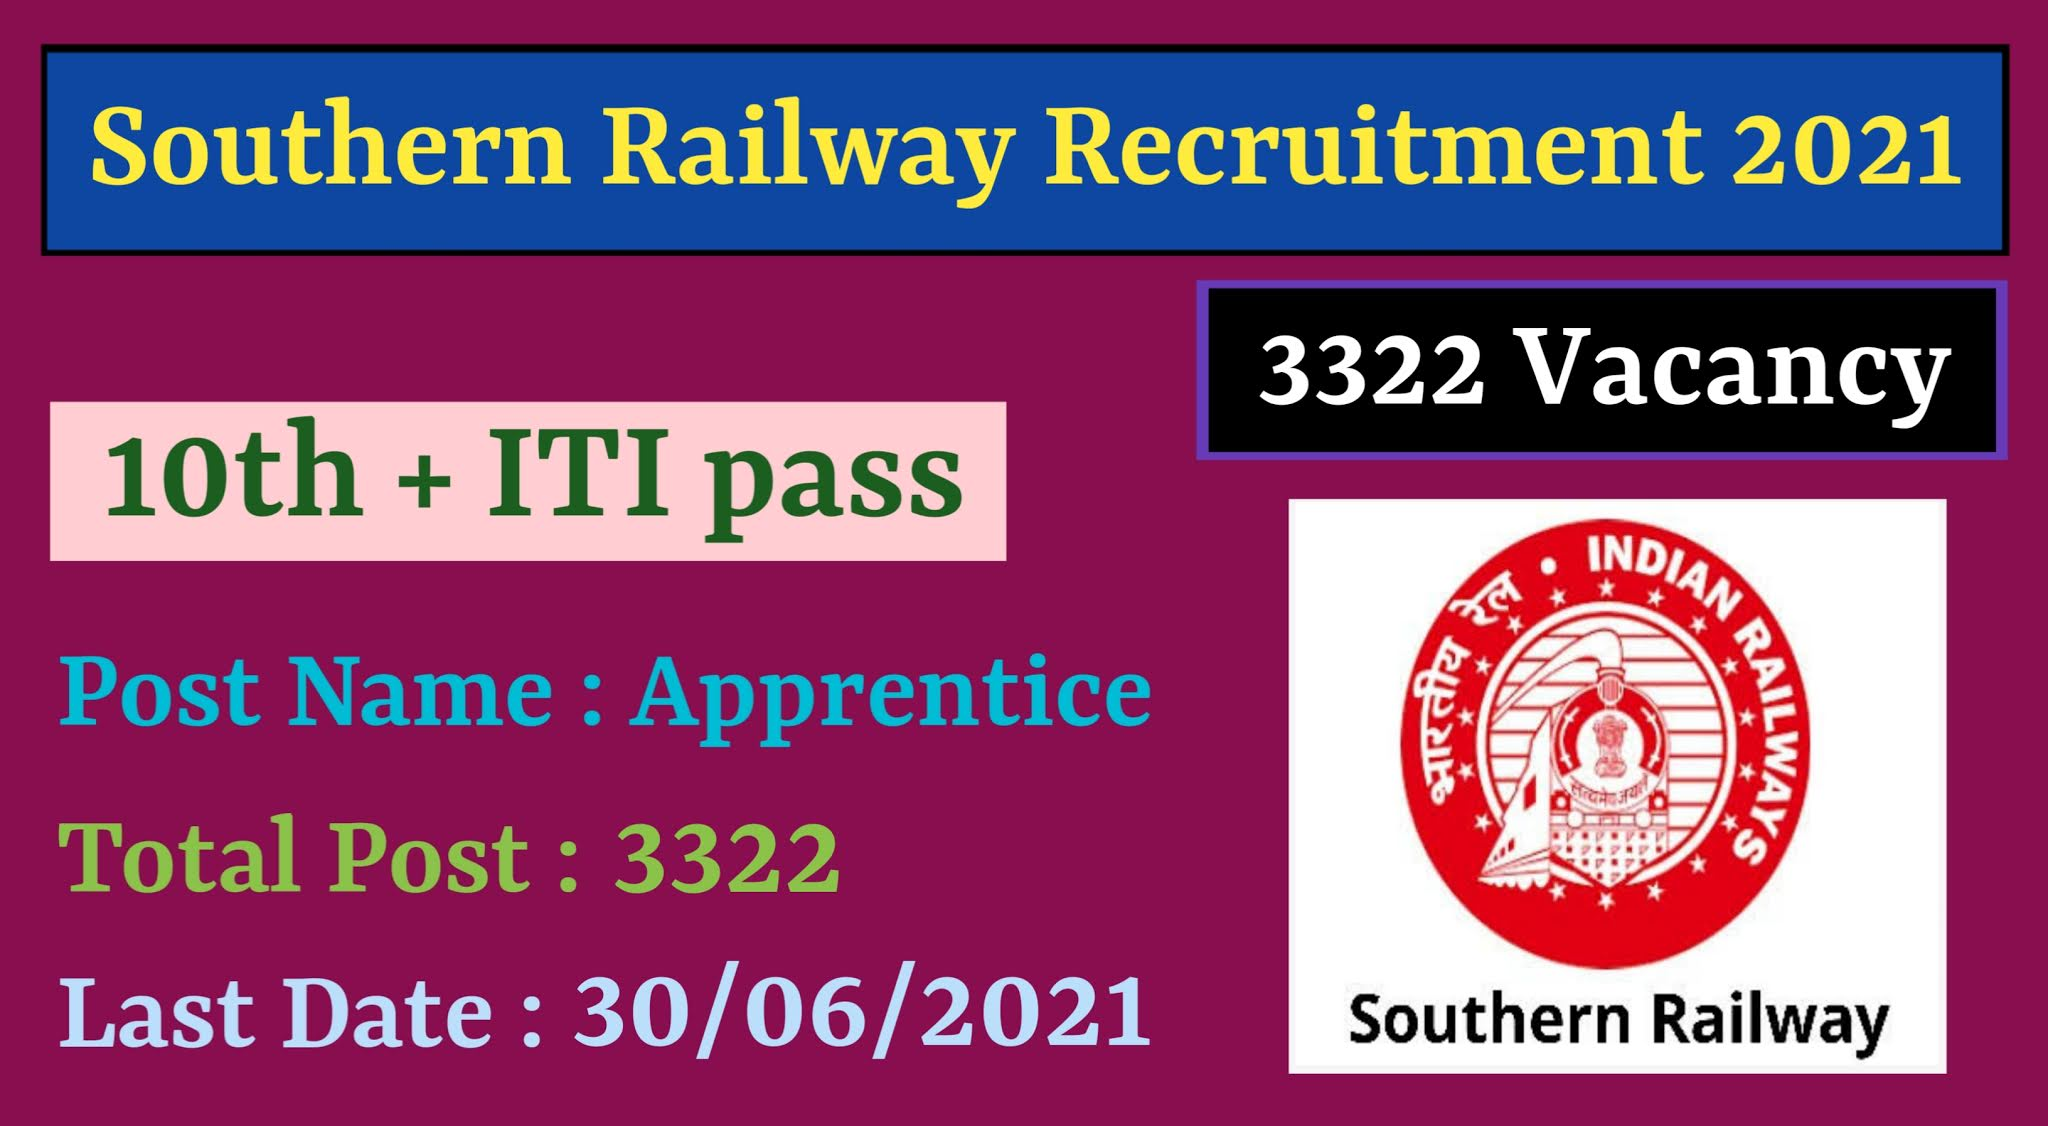 Southern Railway Recruitment 3591 Apprentices post 2021 | Southern Railway Recruitment 2021 | Apply Online Southern Railway 3591 Apprentices post | Southern Railway Apprentice Recruitment 2021 | Southern Railway Apprentice Notification 2021 | Southern Railway Apprentice Vacancy 2021 |  Southern Railway Apprentice Selection Process